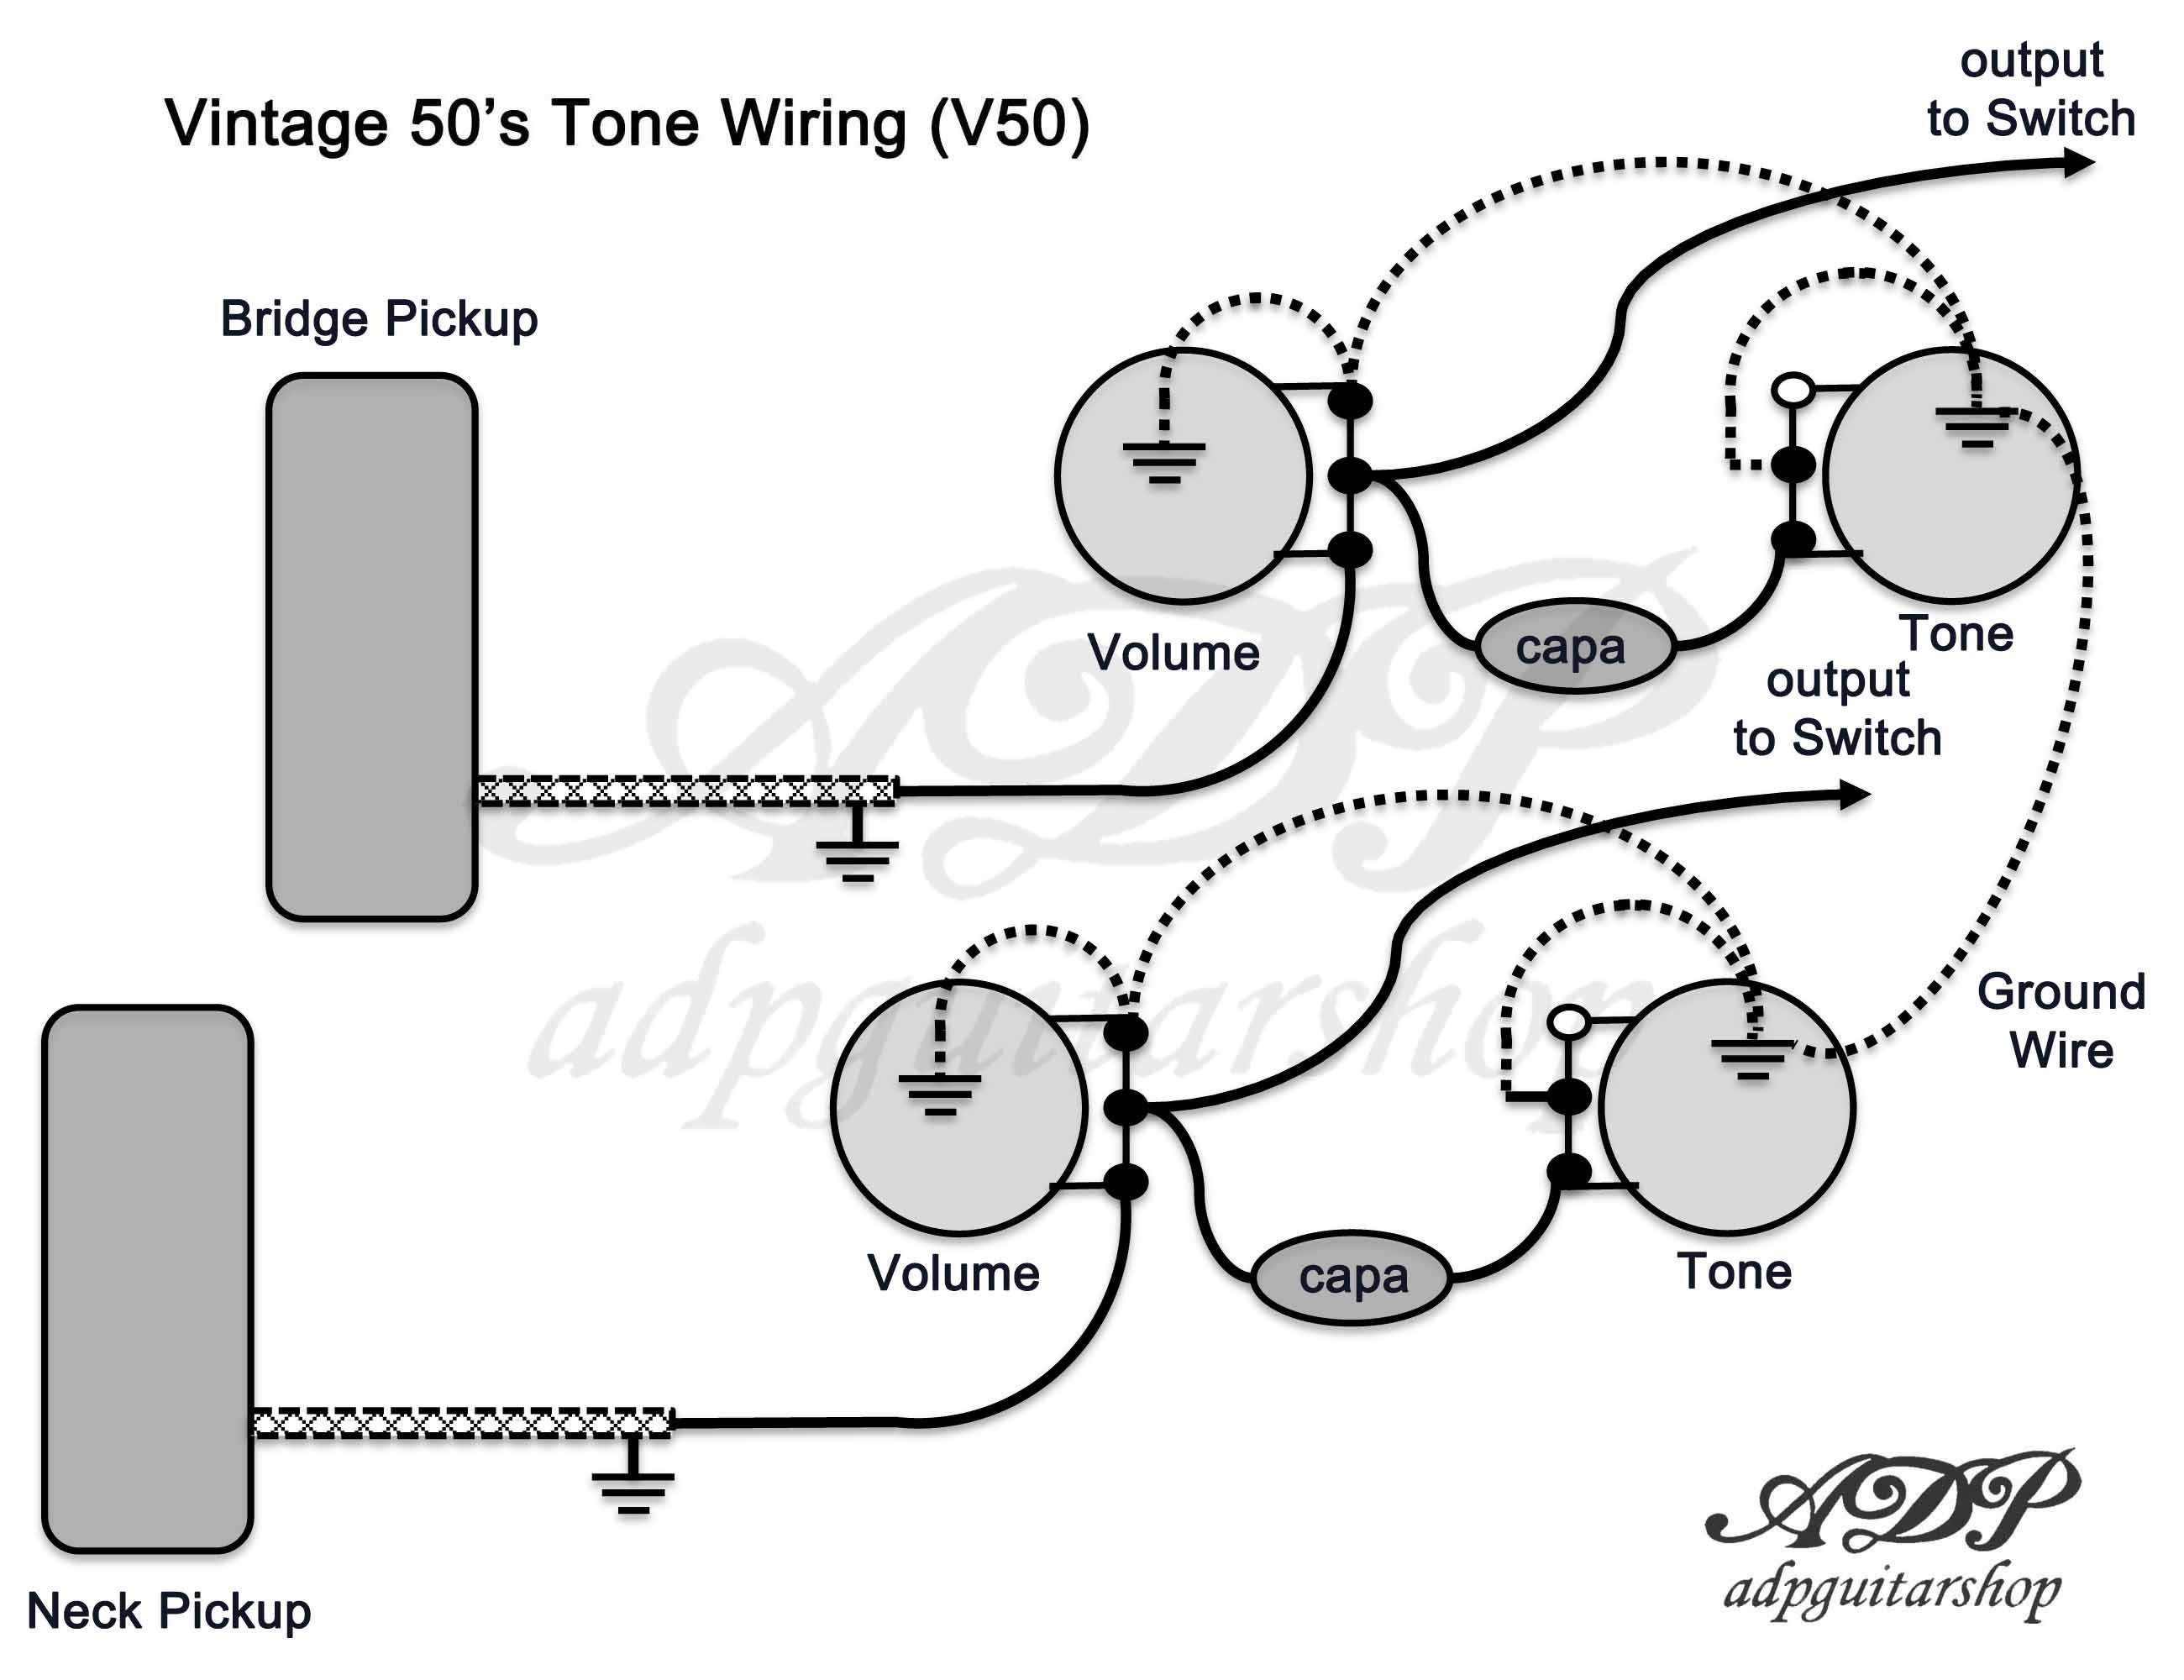 Les Paul Wiring Options - Wiring Diagrams • Diy Guitar Wiring Diagrams on diy basic wiring, cisco diagrams, diy air conditioning, electrical connections diagrams, diy power supply diagrams, diy engine, electrical circuit diagrams, diy blueprints, turbo installation diagrams, diy wiring outlets, kawasaki electrical diagrams, vertical can pump diagrams, light switch diagrams, diy wiring and electrical code, diy lights, pinout diagrams, car repair diagrams, diy clutch, diy wiring projects, diy drawings,